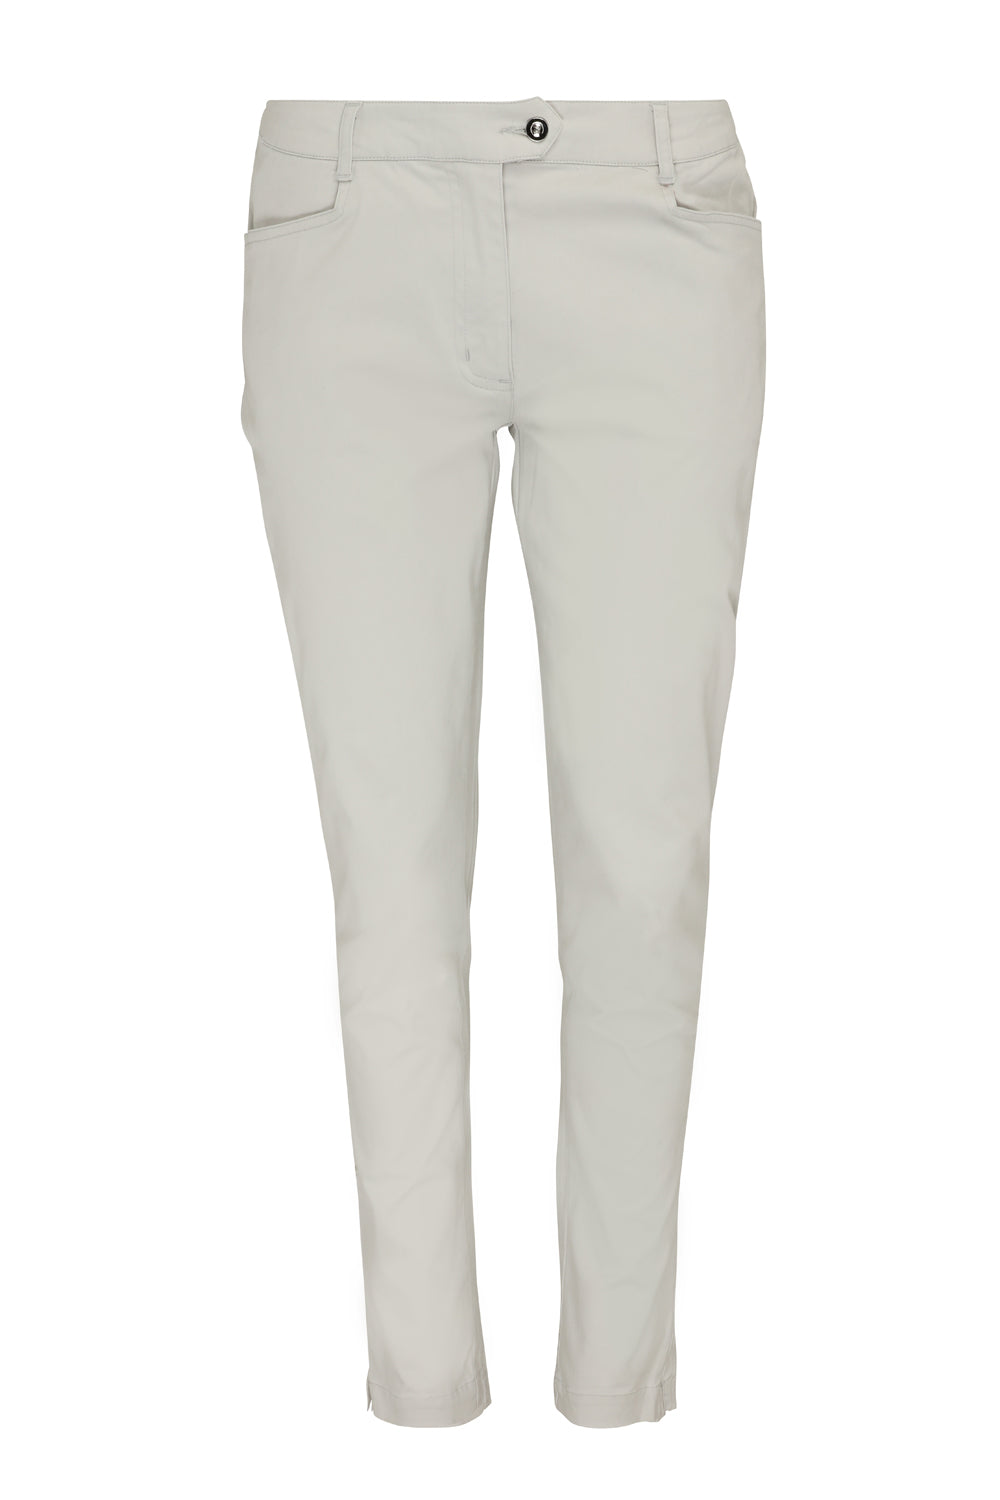 Long Beach Trousers